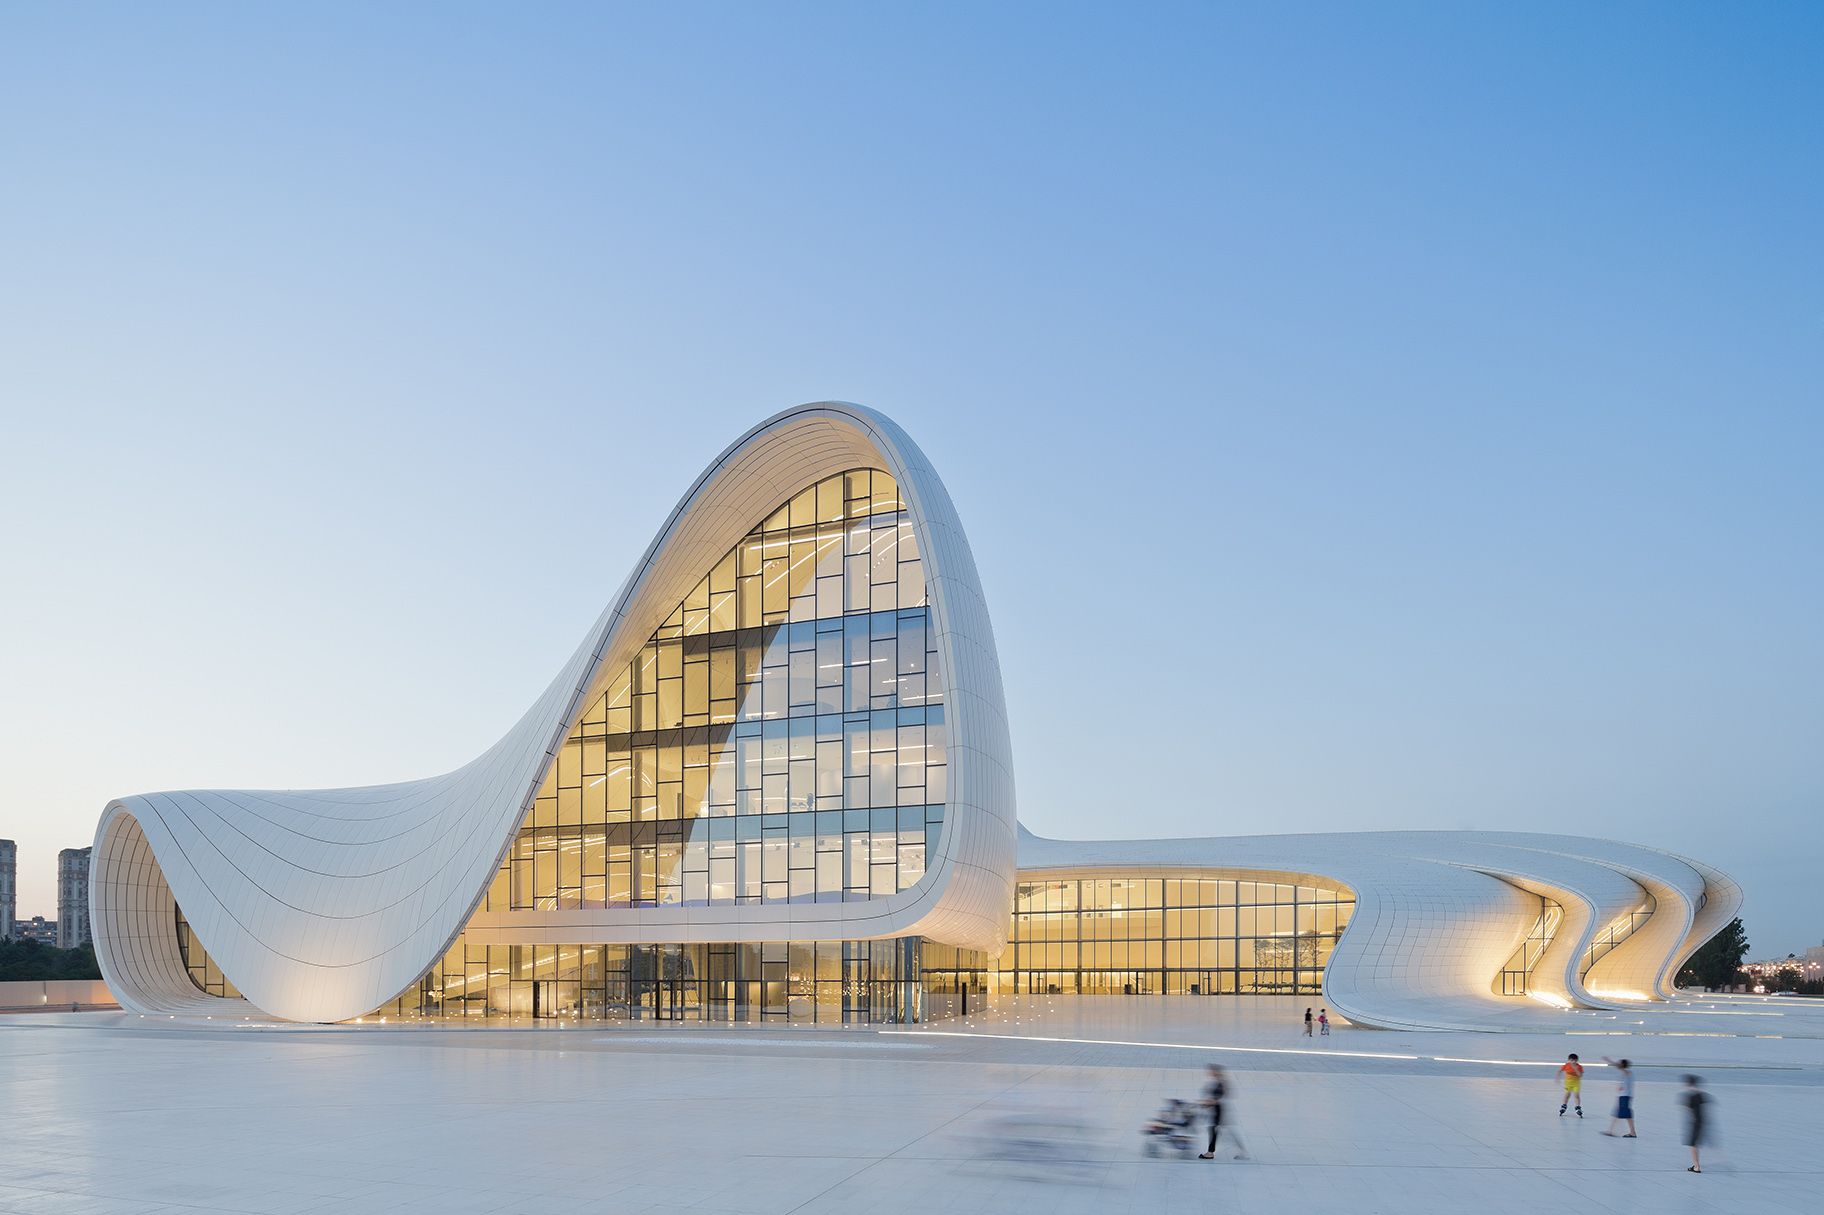 ZAHA HADID: BREAKING THE STEREOTYPE